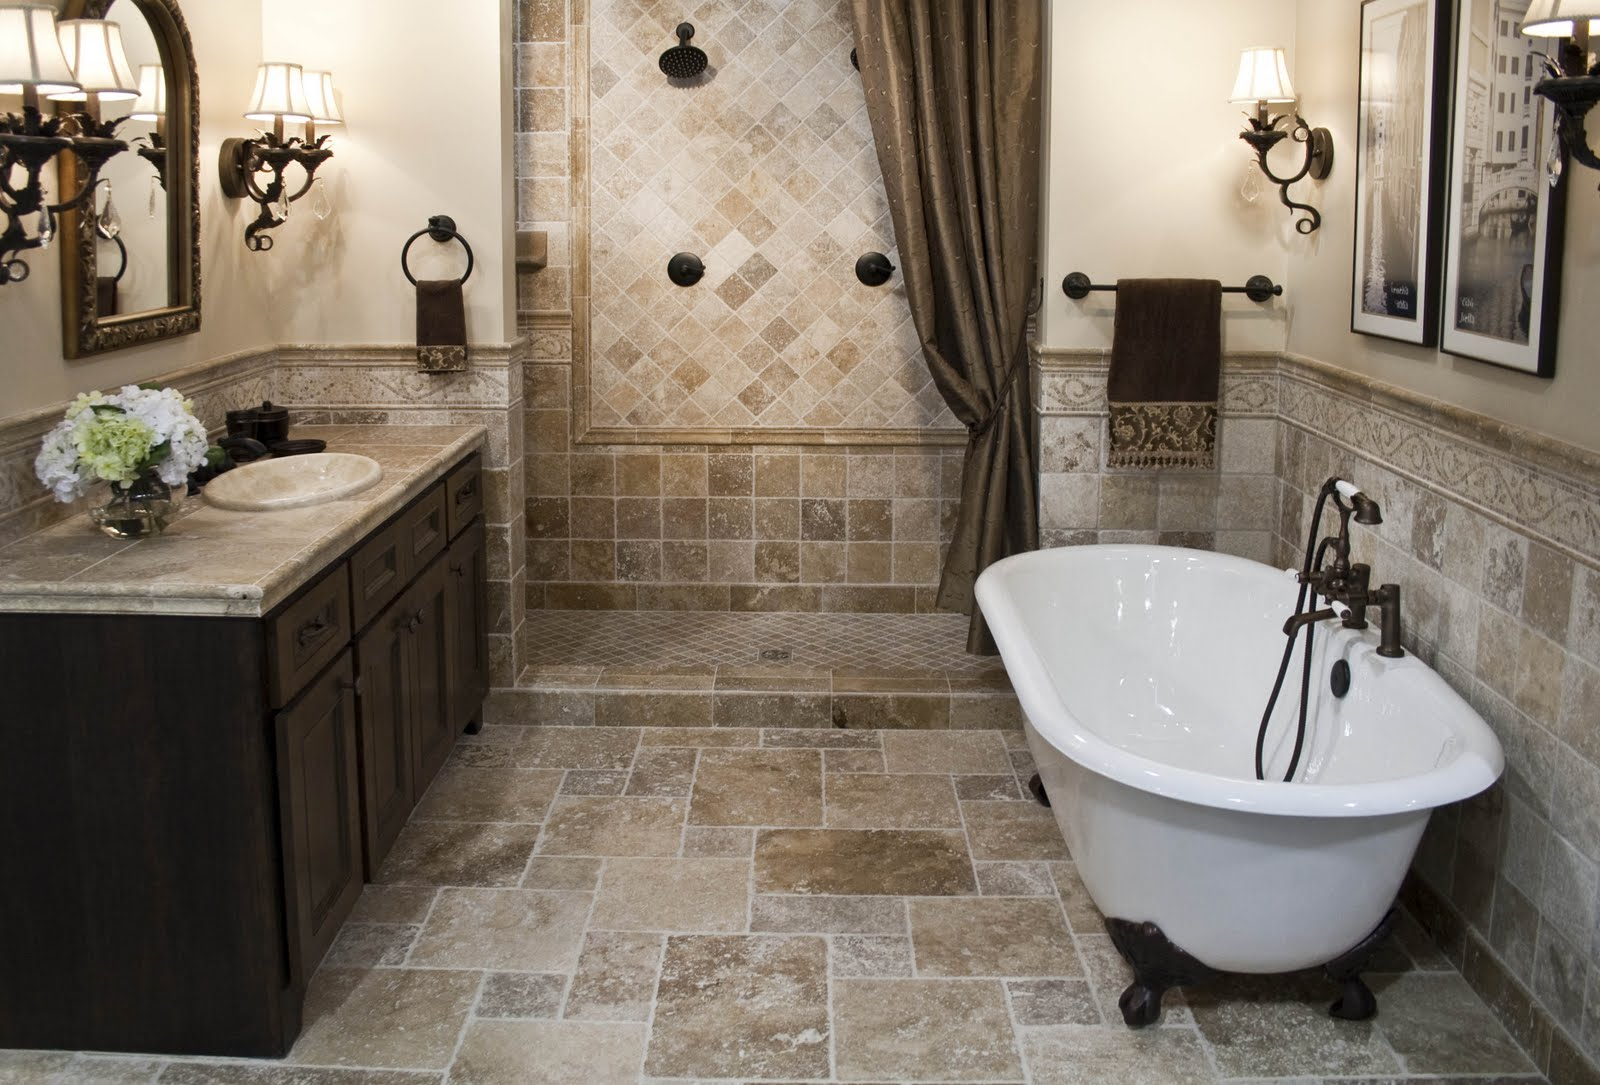 bathroom improvements ideas 25 best bathroom remodeling ideas and inspiration the wow style 577